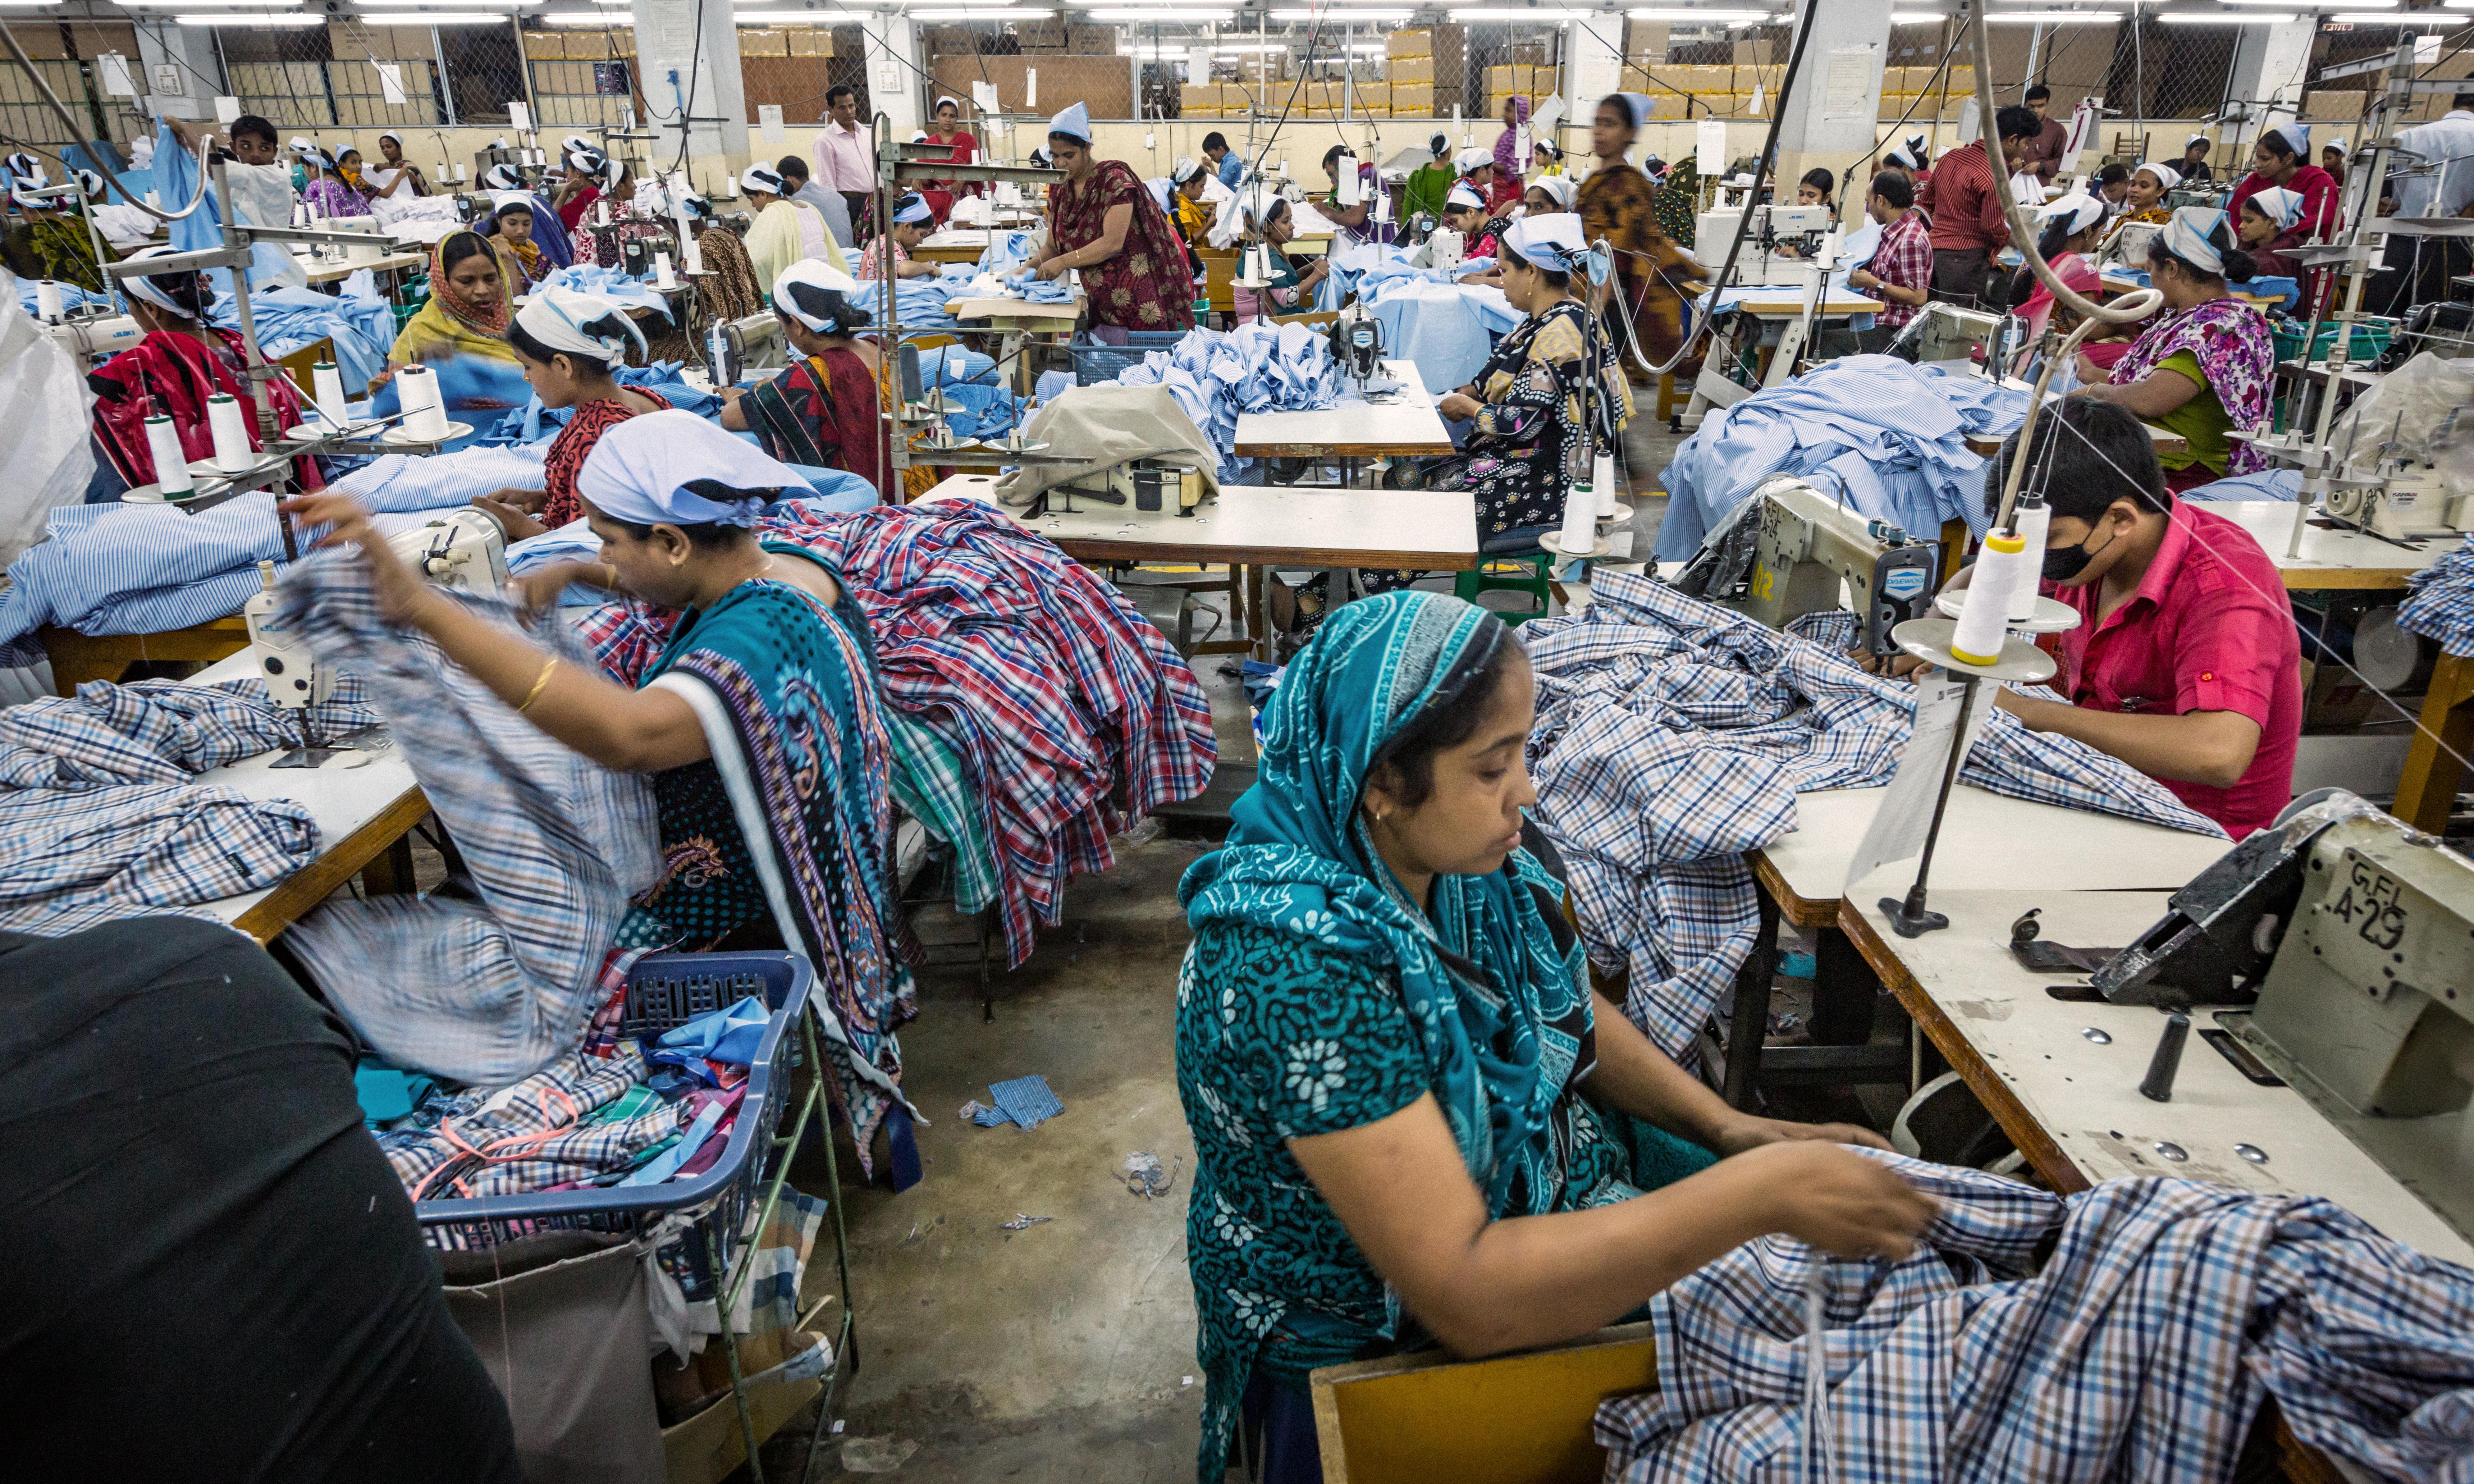 Low pay in the garment industry still a reality despite pledges – study